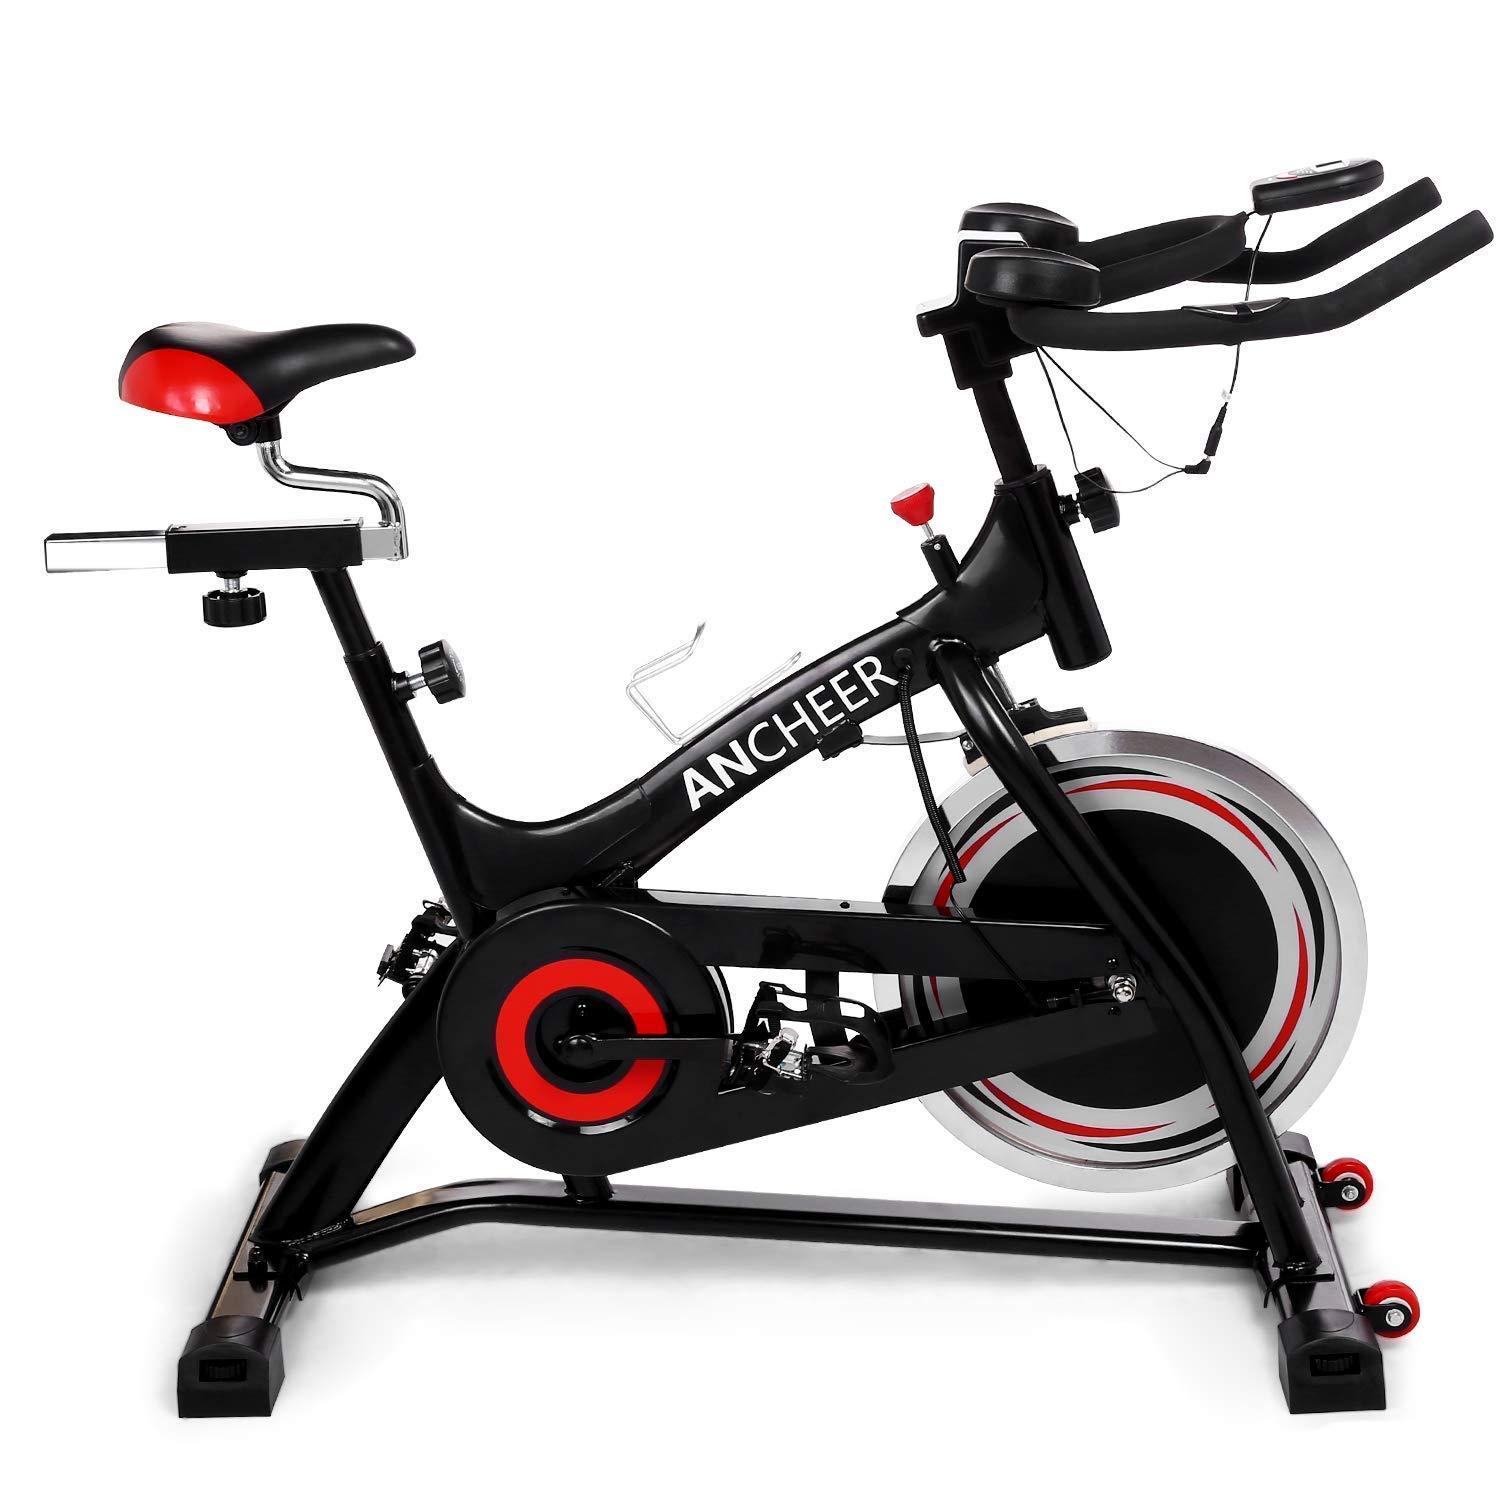 ANCHEER Stationary Bike, 40 lbs Flywheel Indoor Cycling Exercise Bike with Heart Rate, Quiet Smooth Belt Drive System, Adjustable Seat & Handlebars & Base by ANCHEER